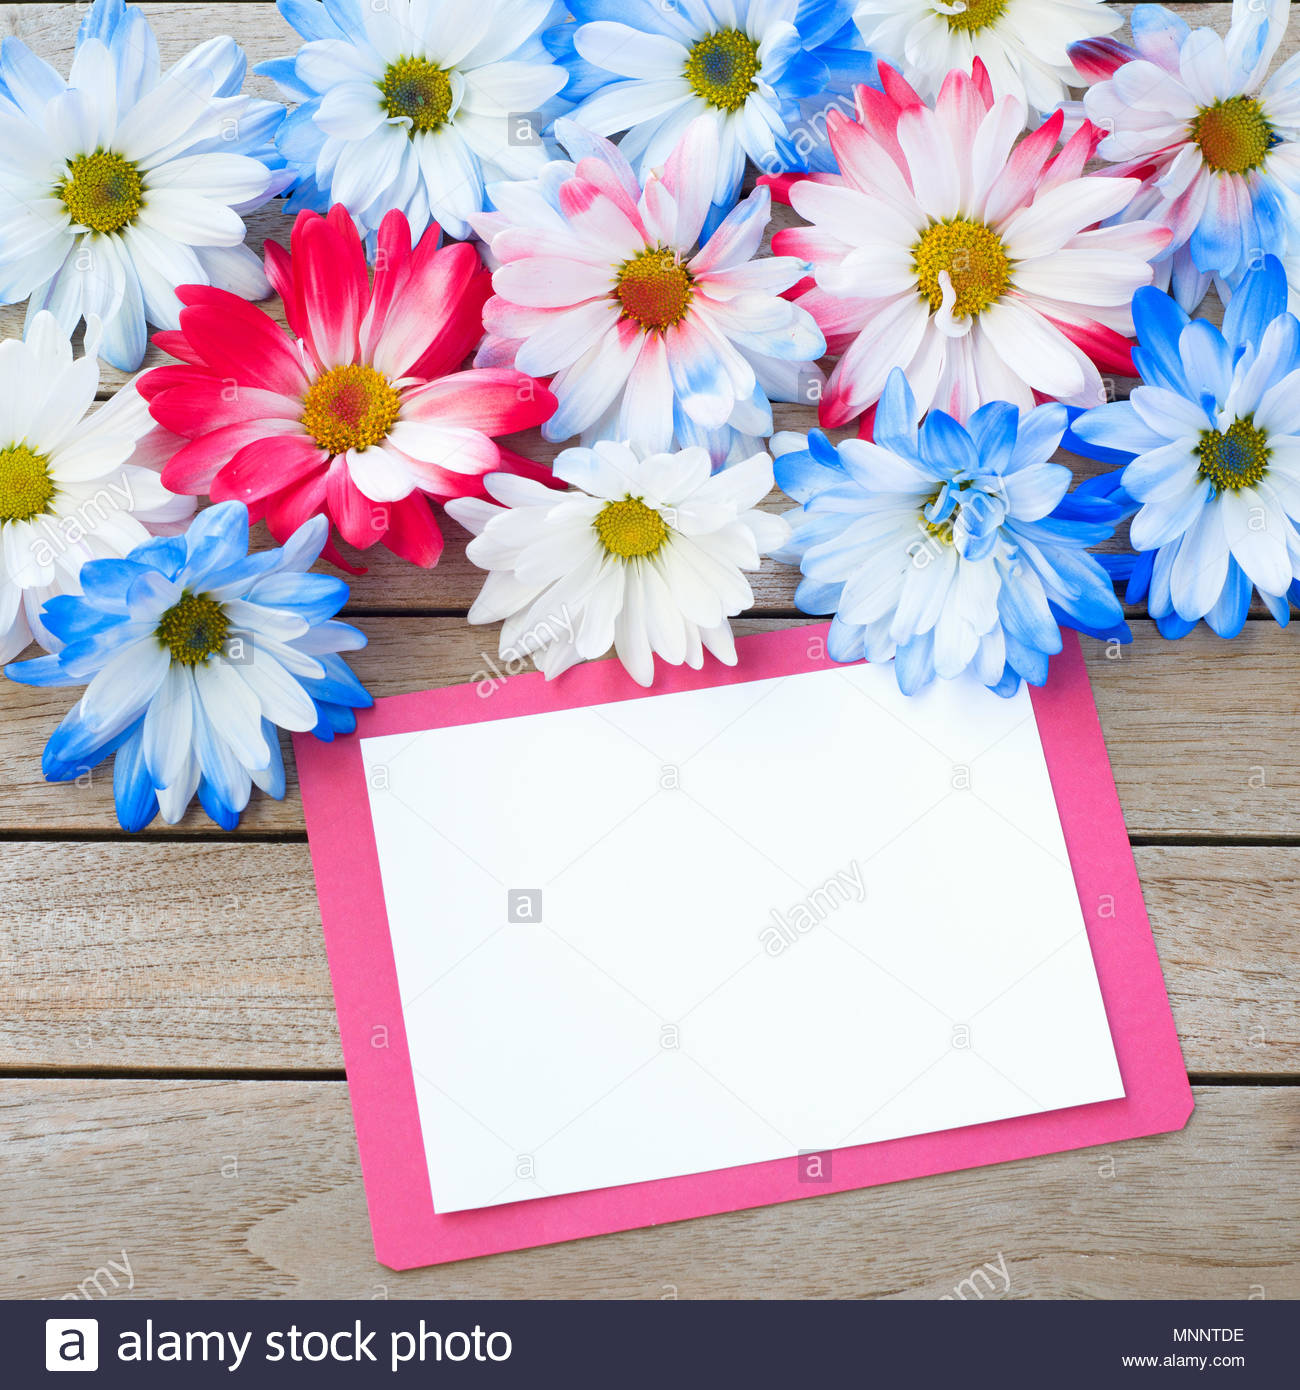 daisy flowers in red white and blue colors with party invitation